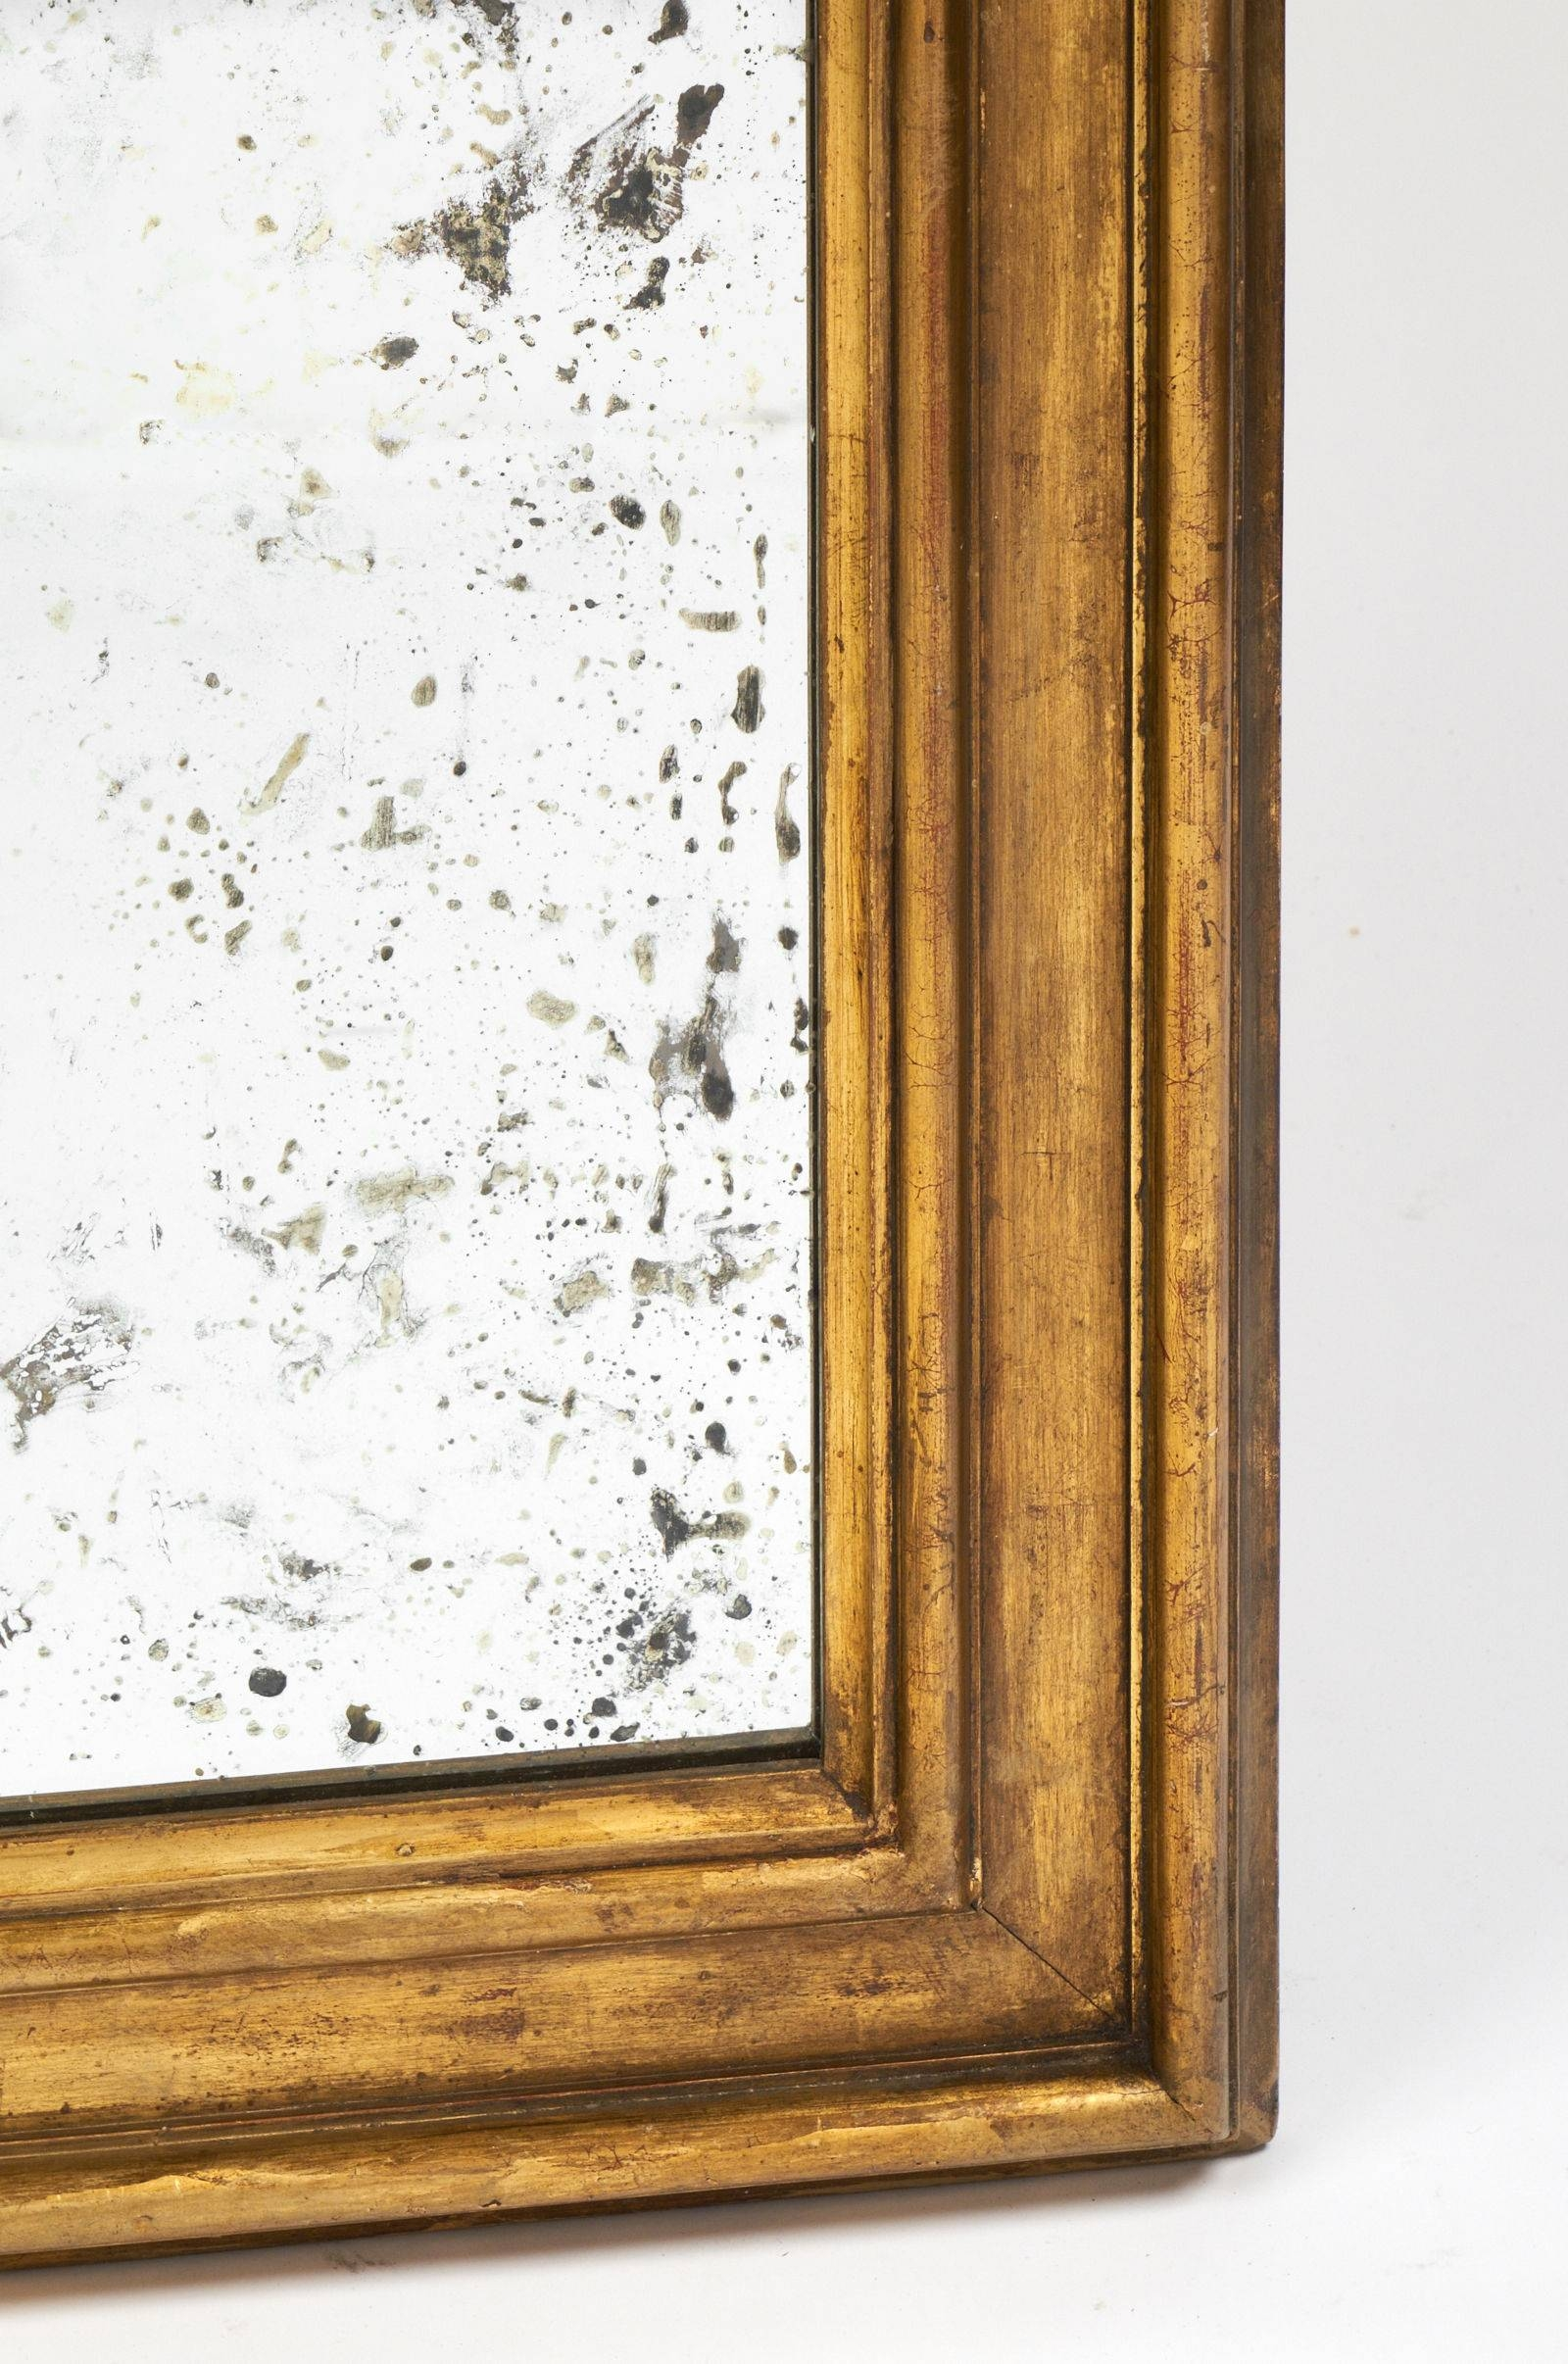 Antique Louis Xvi Style Gold Leaf Mirrors – Jean Marc Fray For Antique Gold Mirrors (View 21 of 25)